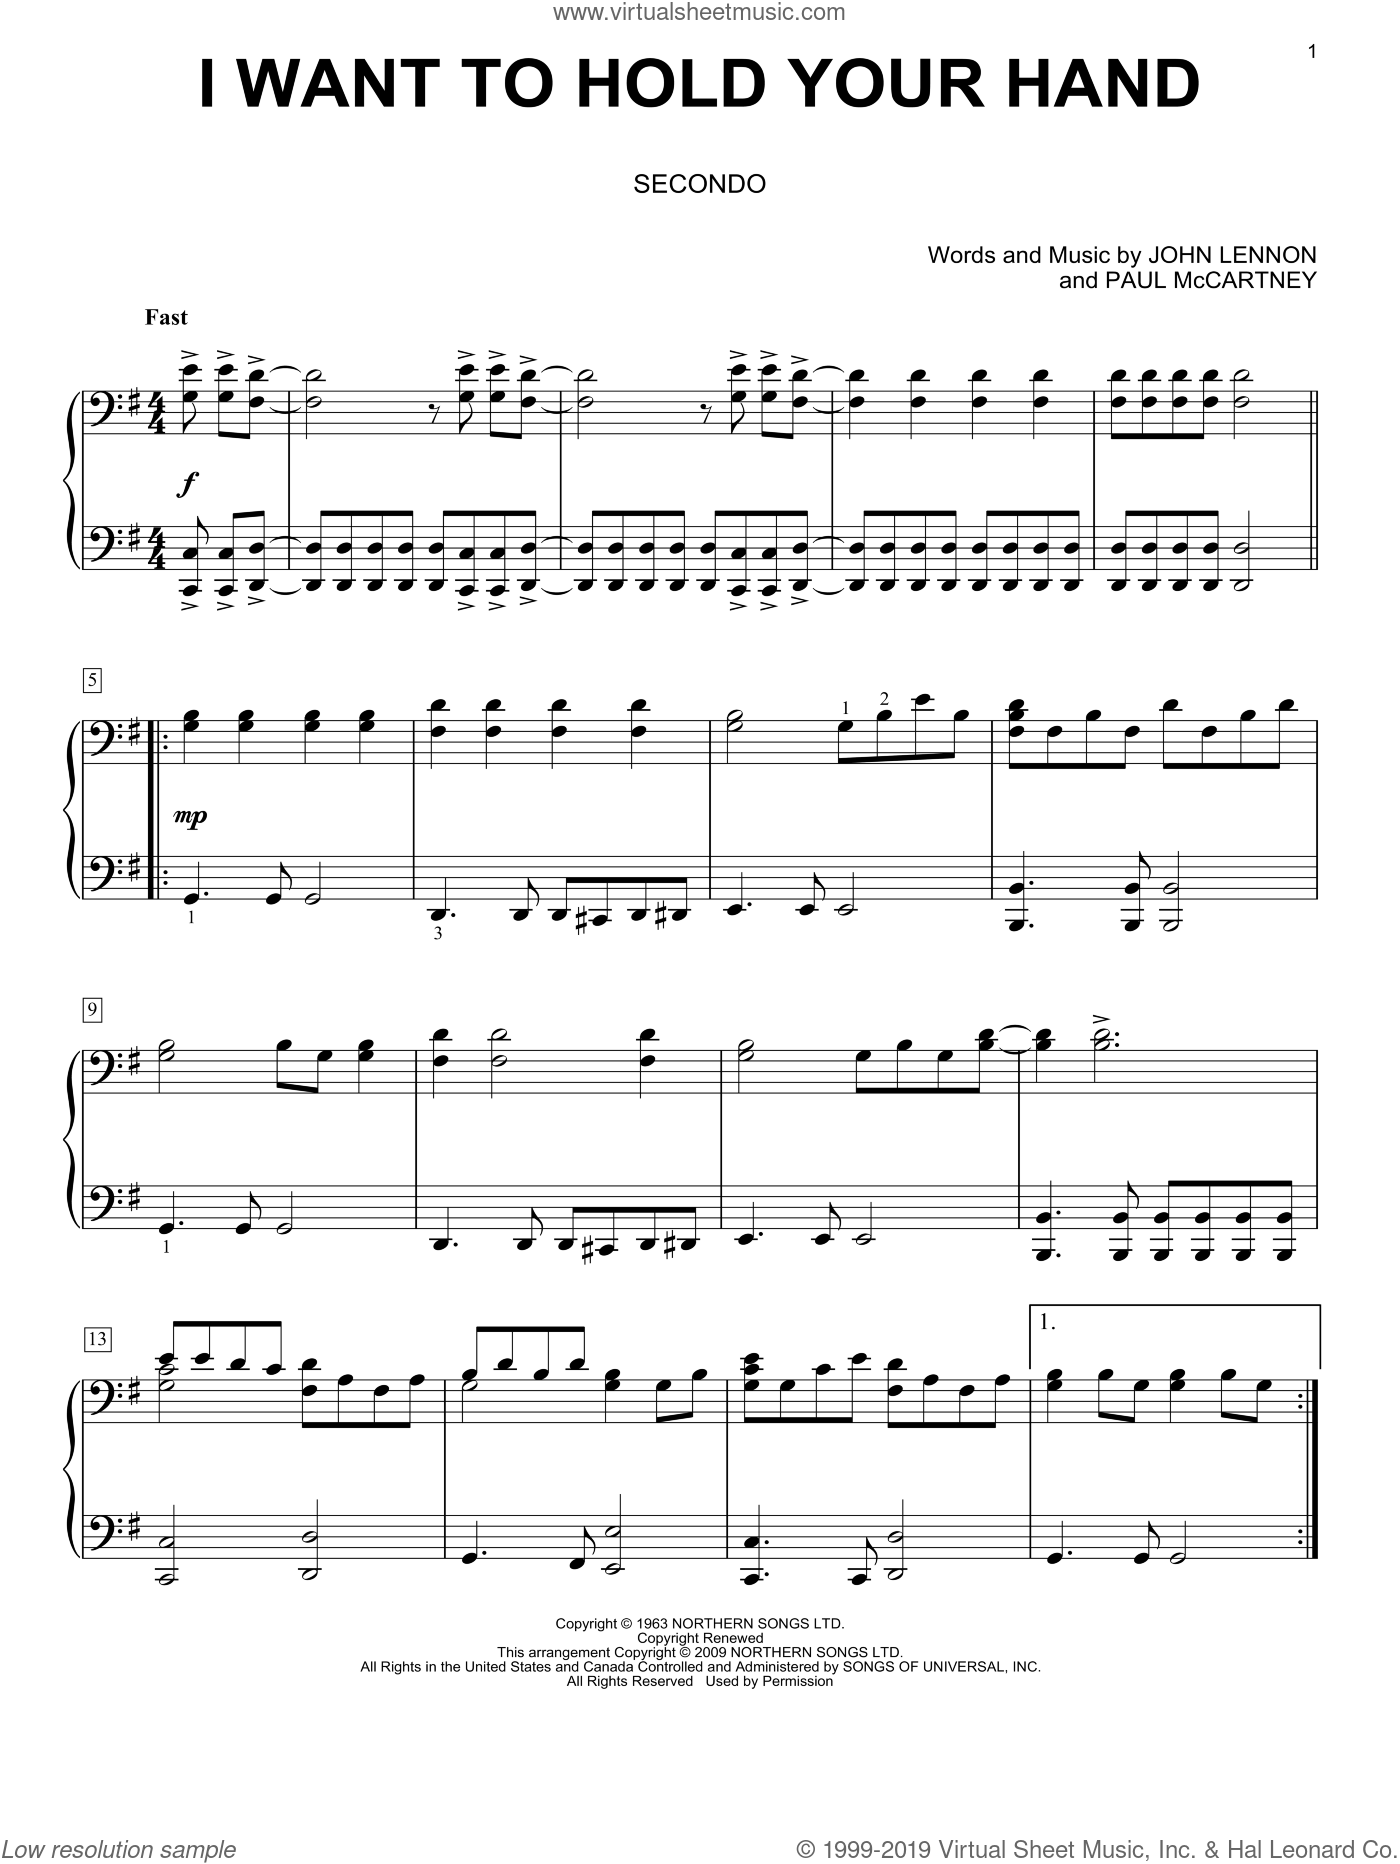 I Want To Hold Your Hand sheet music for piano four hands by The Beatles, John Lennon and Paul McCartney, intermediate skill level